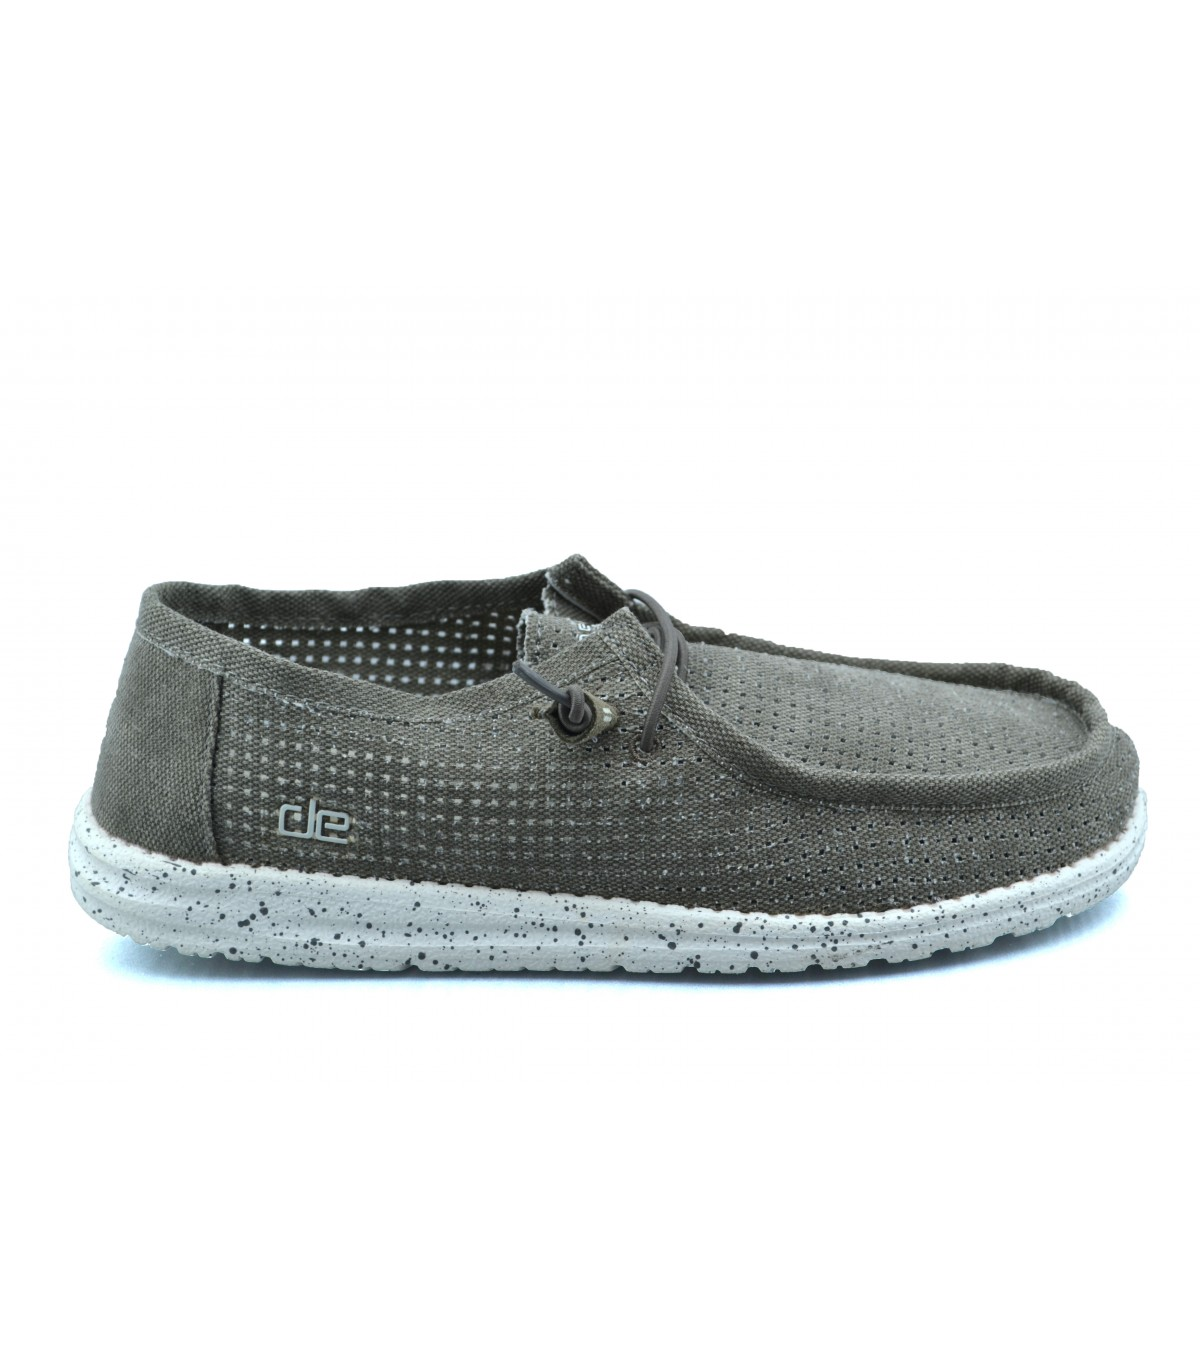 Tan Hombre Perforated Dude Zapatos Casual Wally A4j35RLq